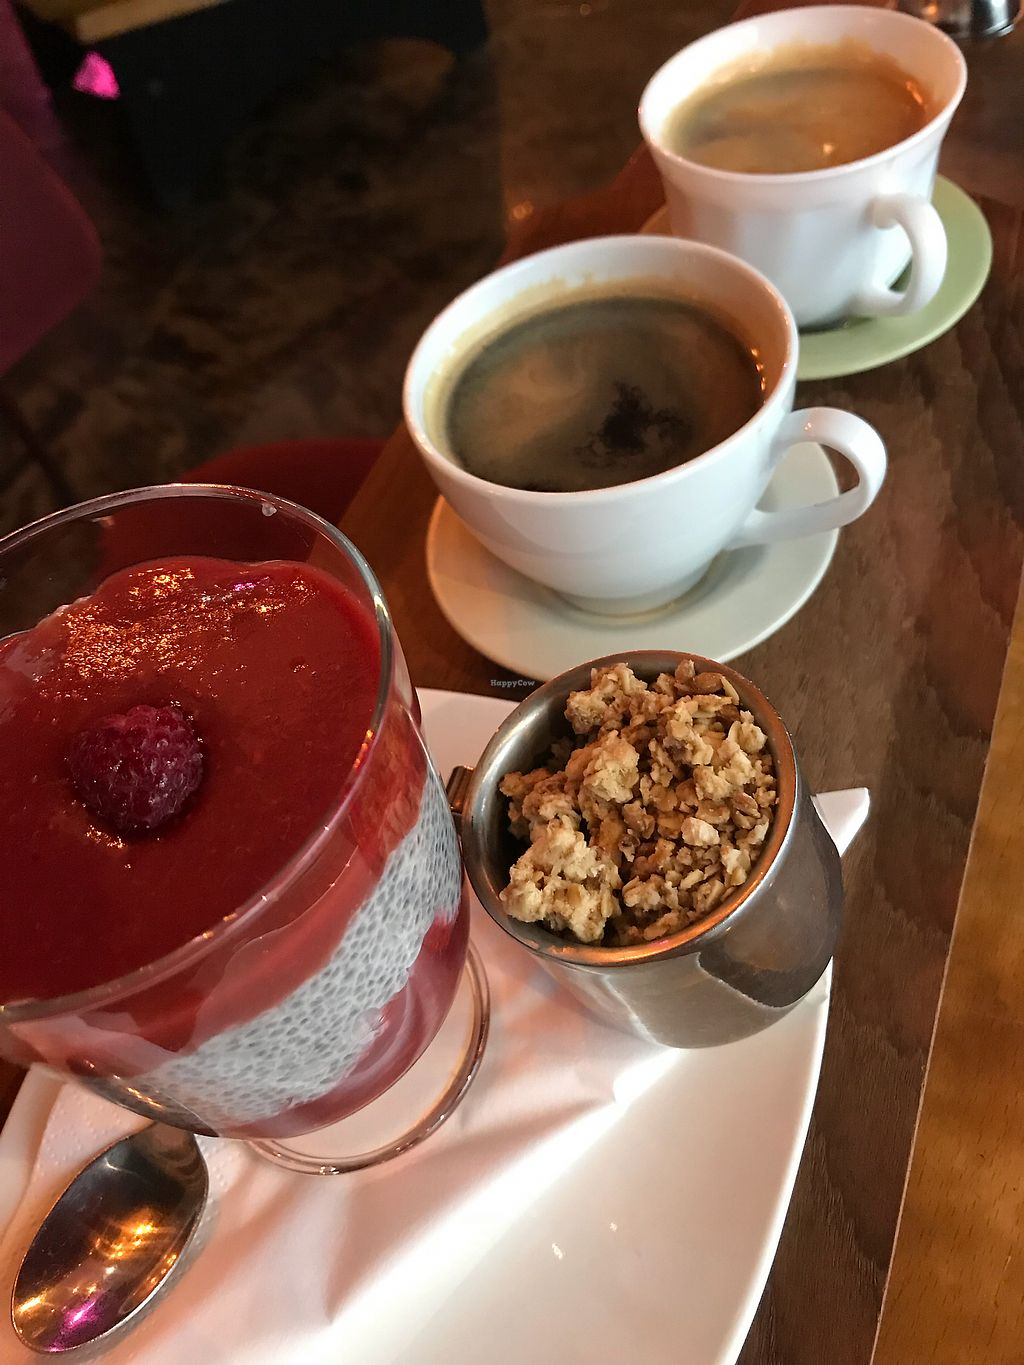 """Photo of Kaffi Vinyl  by <a href=""""/members/profile/johnnyh"""">johnnyh</a> <br/>Coffee ☕️ and chia seed raspberry pudding.  <br/> October 27, 2017  - <a href='/contact/abuse/image/68917/319220'>Report</a>"""